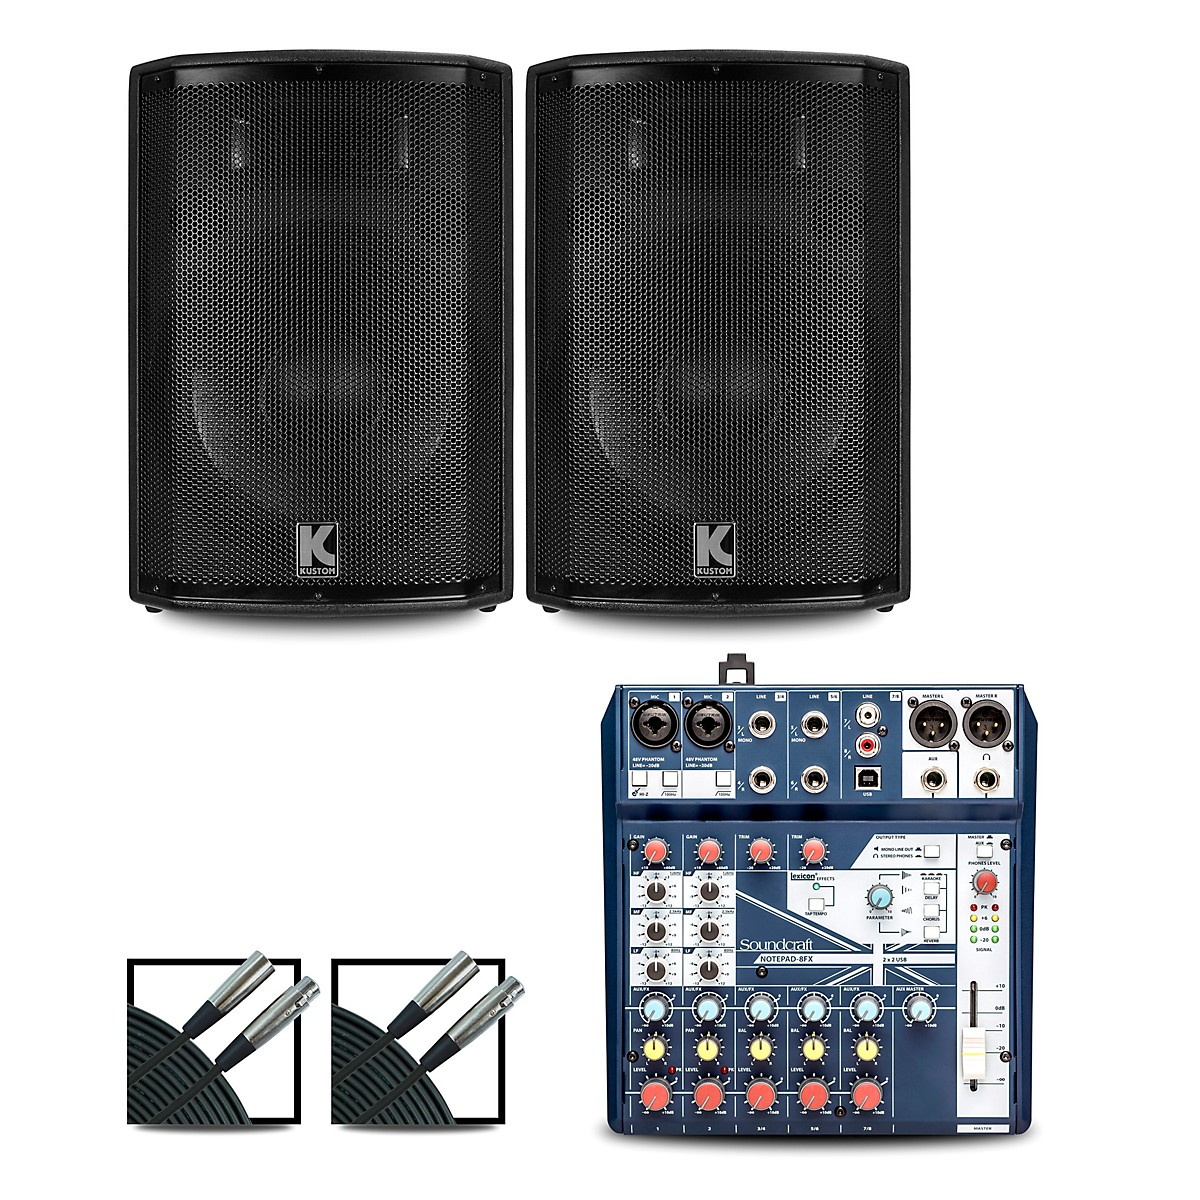 Soundcraft Notepad8FX Mixer and Kustom HiPAC Speakers